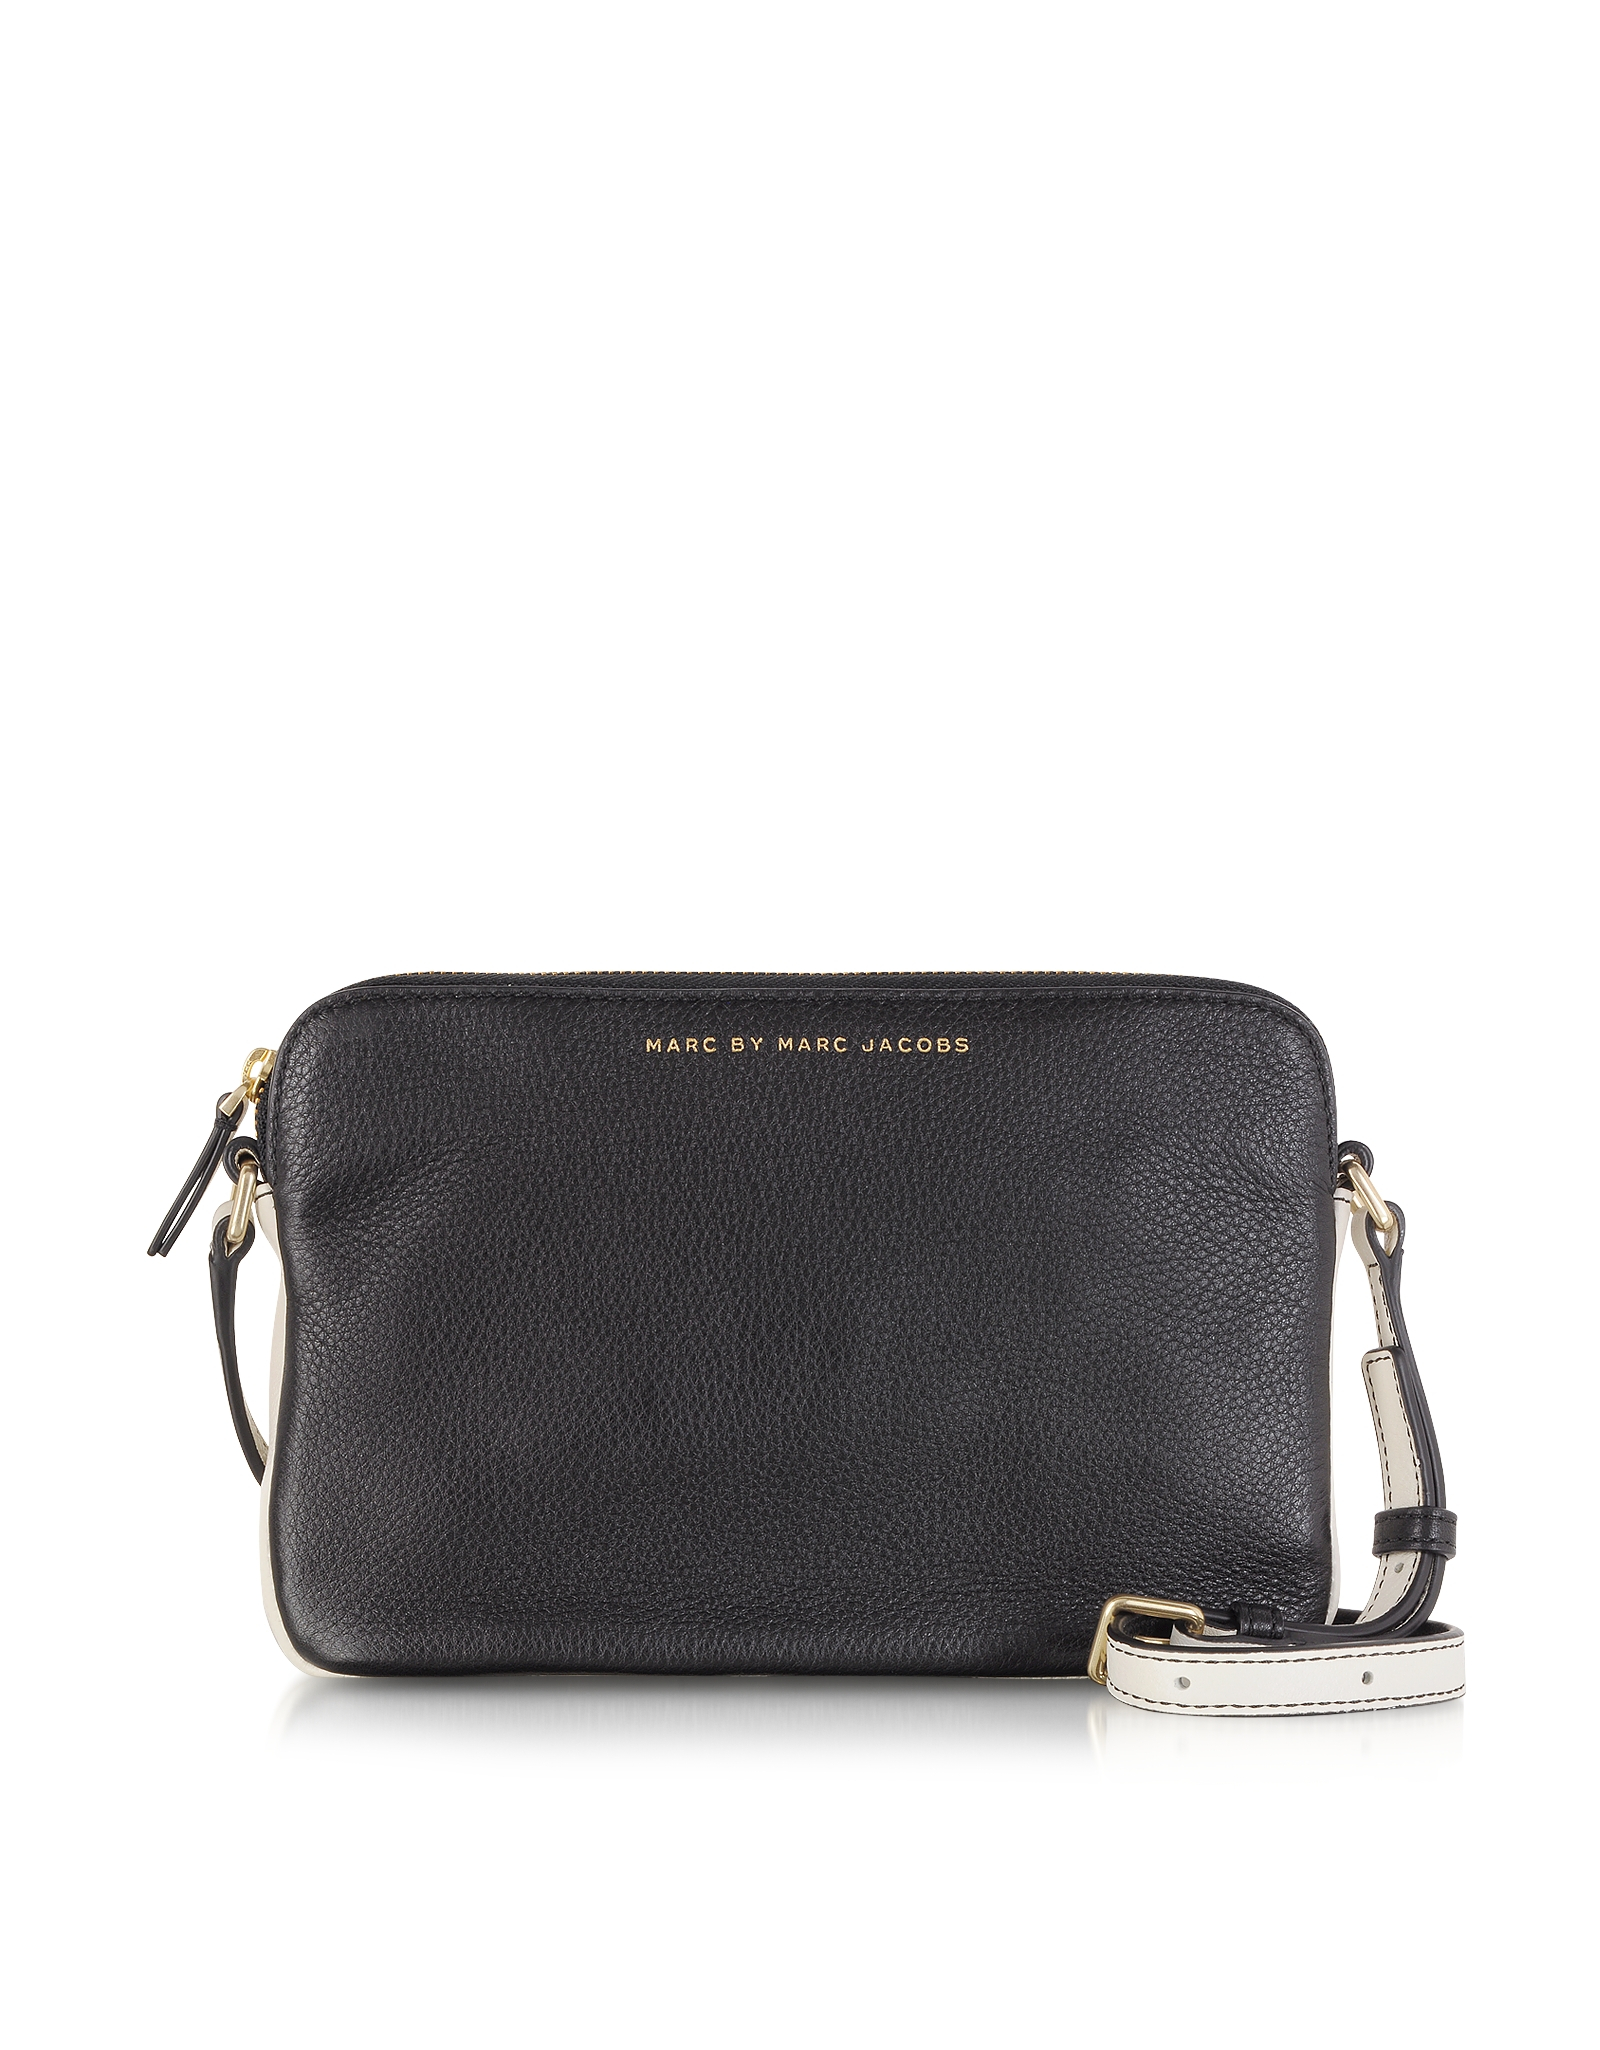 31f261eda3c Marc By Marc Jacobs Sophisticato Dani Leather Crossbody Bag in Black ...